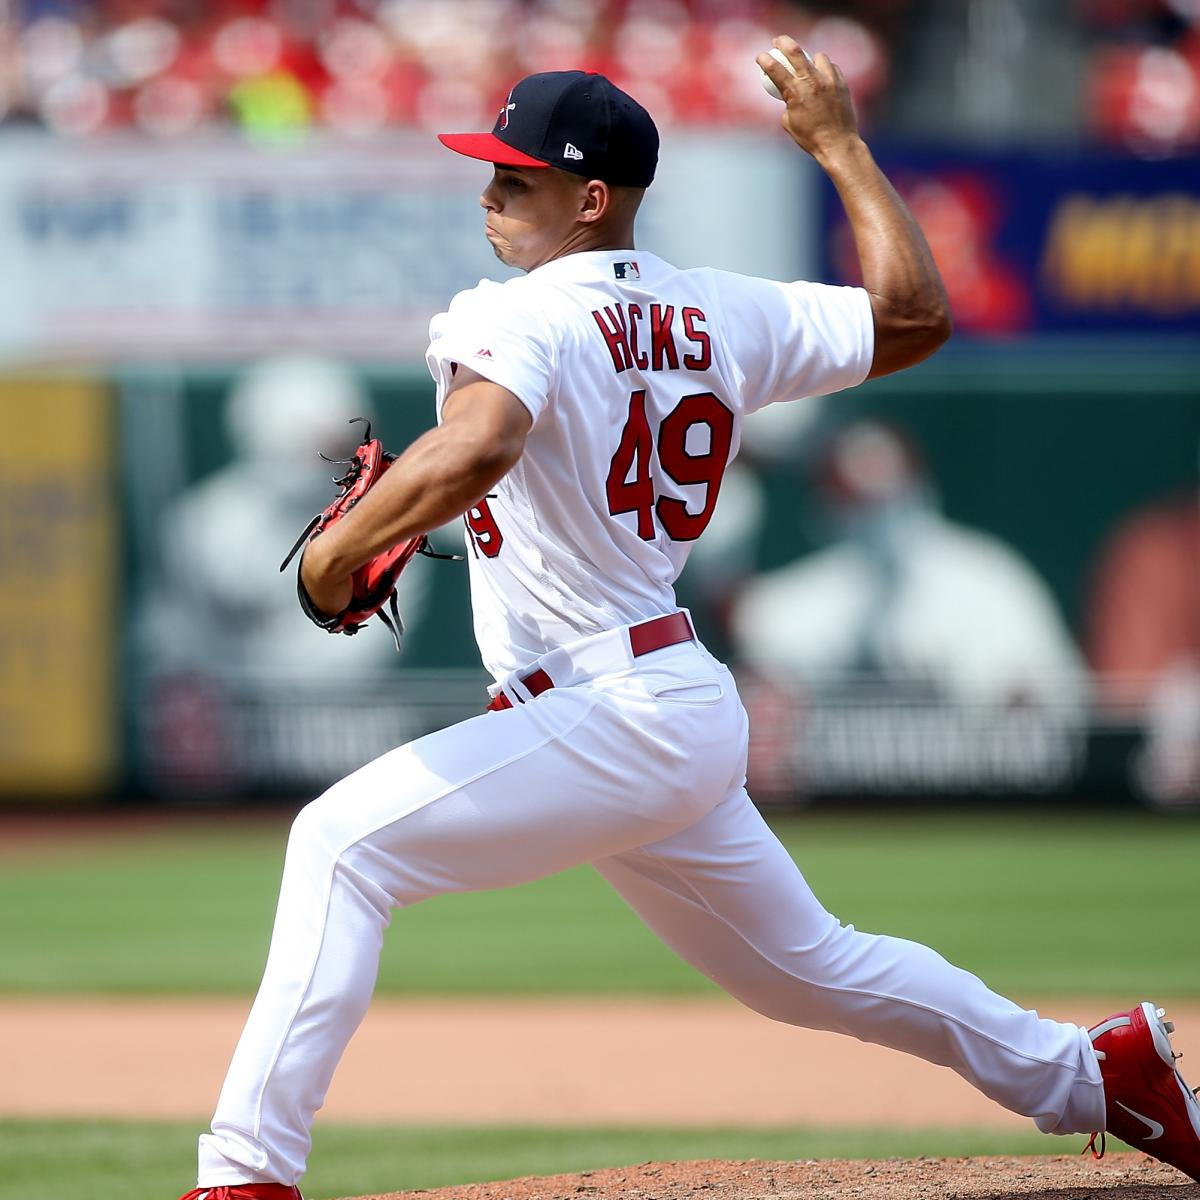 Reliever throws record 105-mph pitch